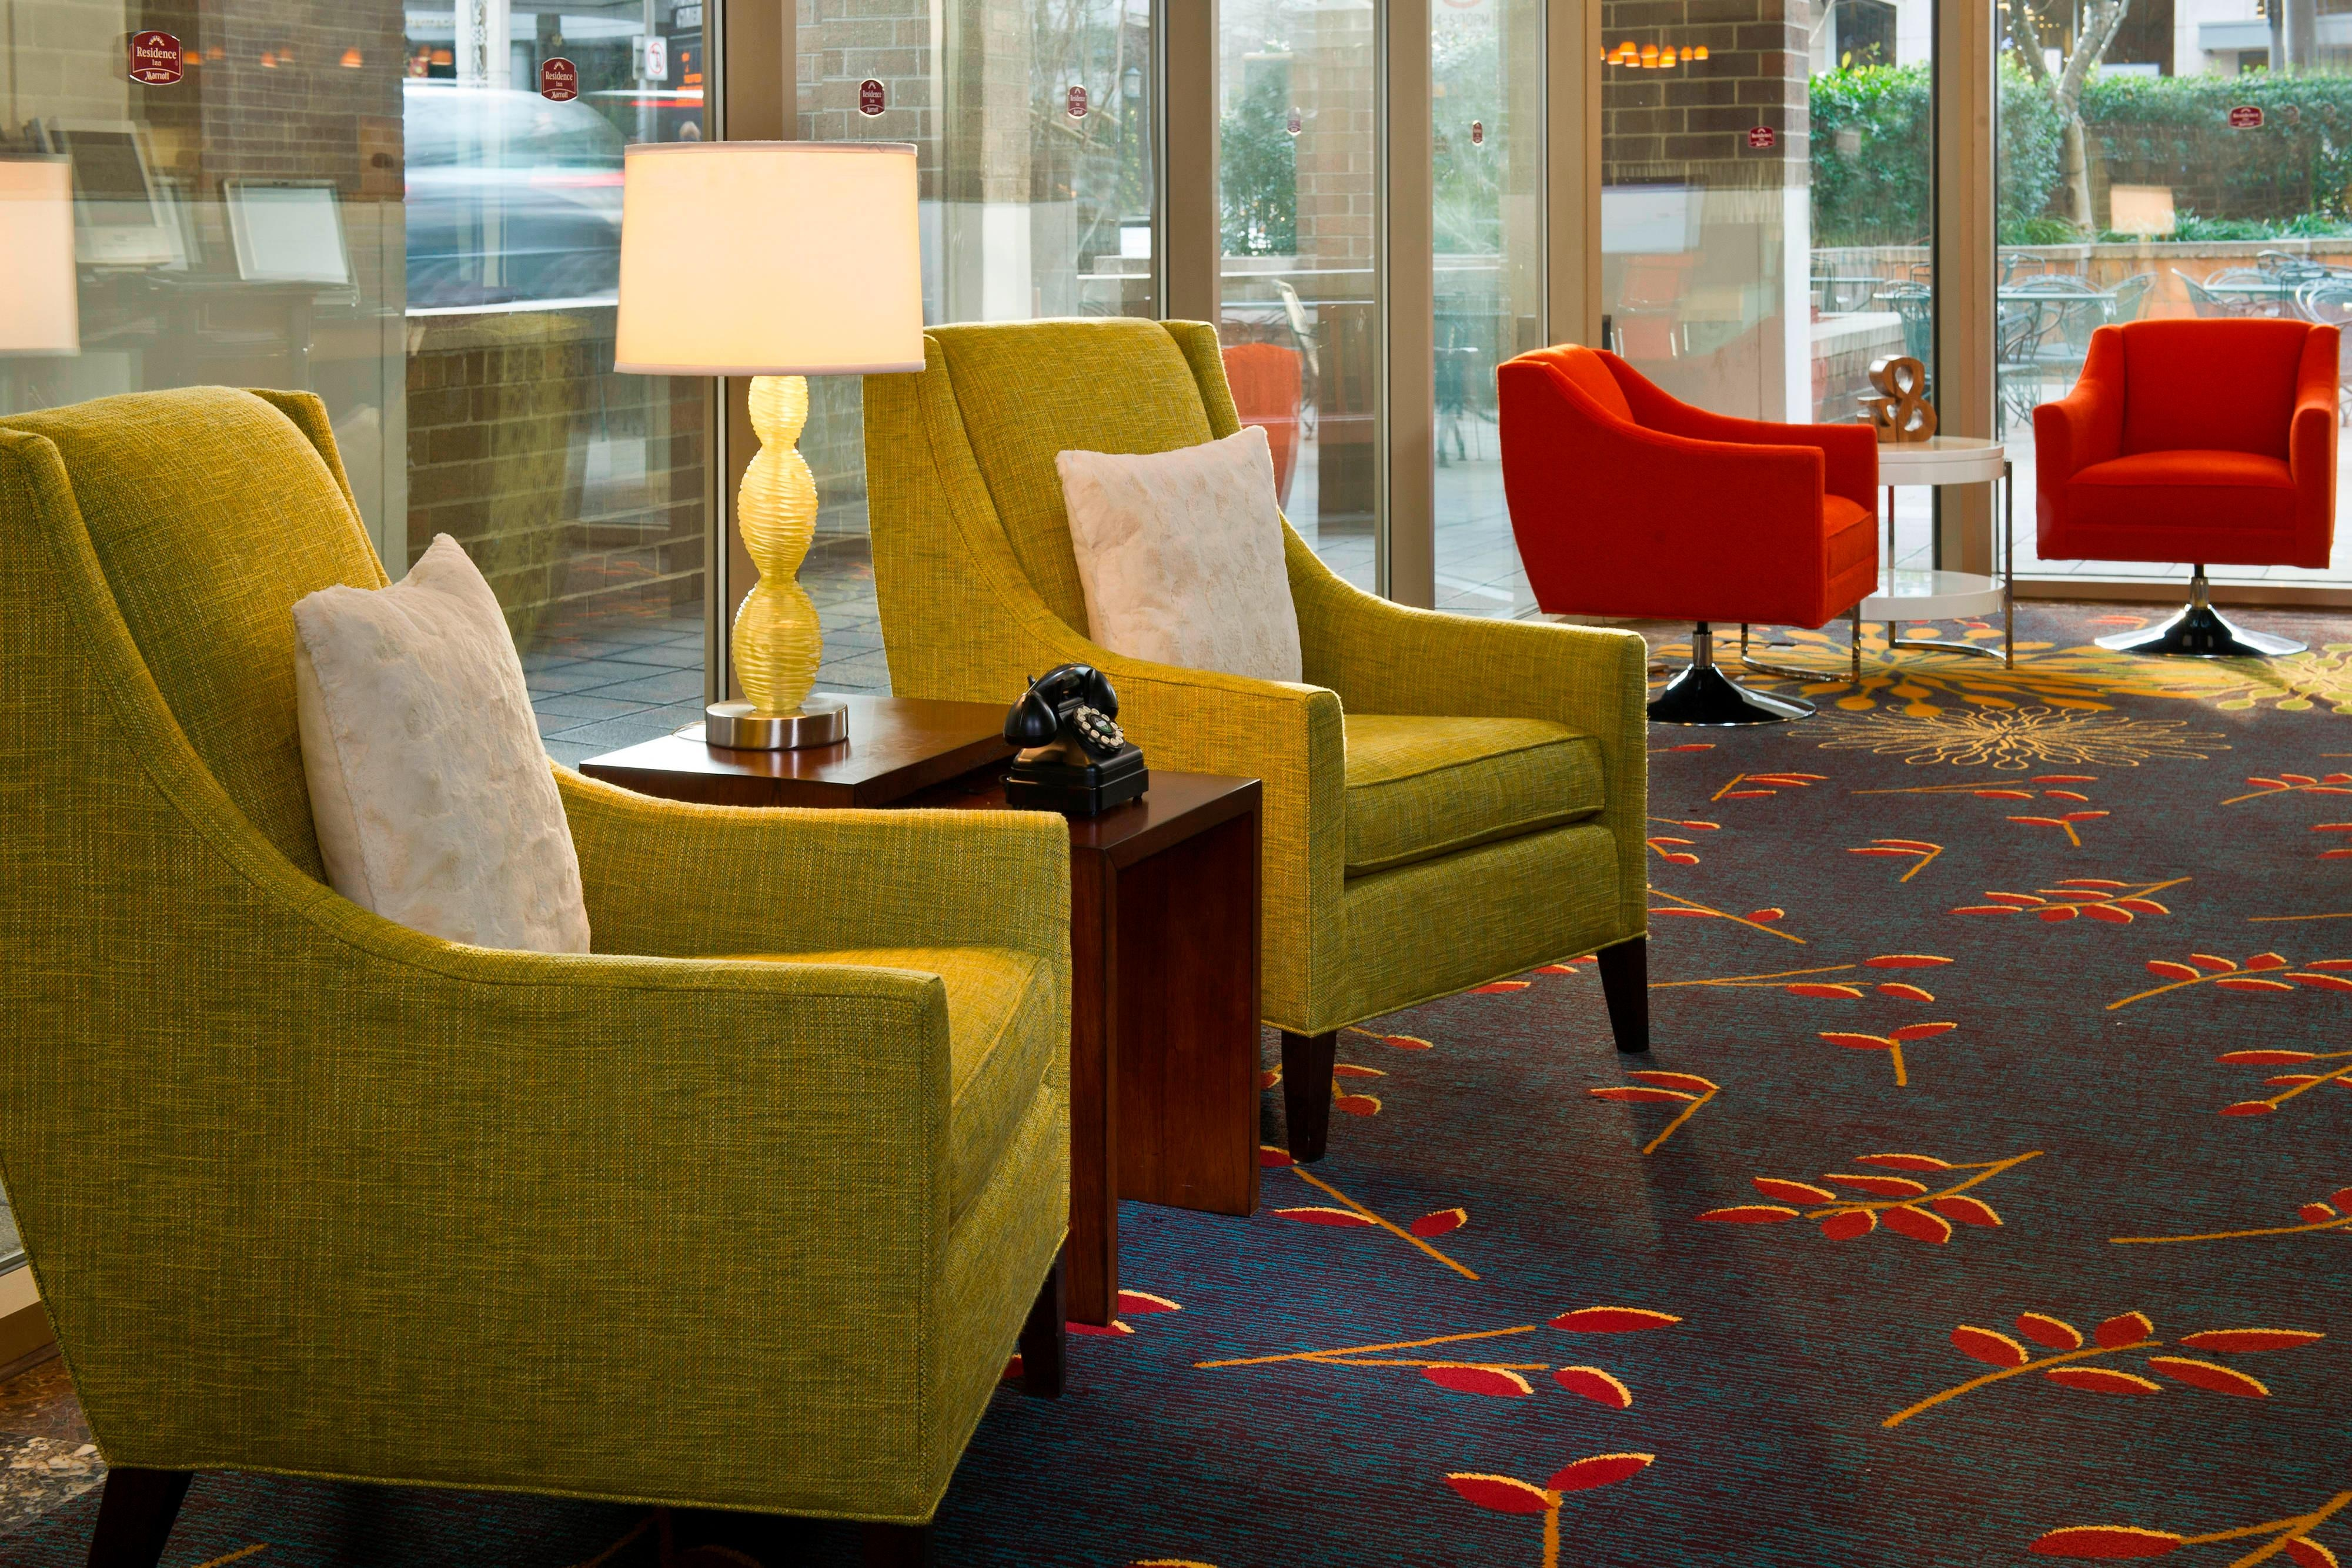 Residence Inn Bethesda Downtown Lobby Seating Area